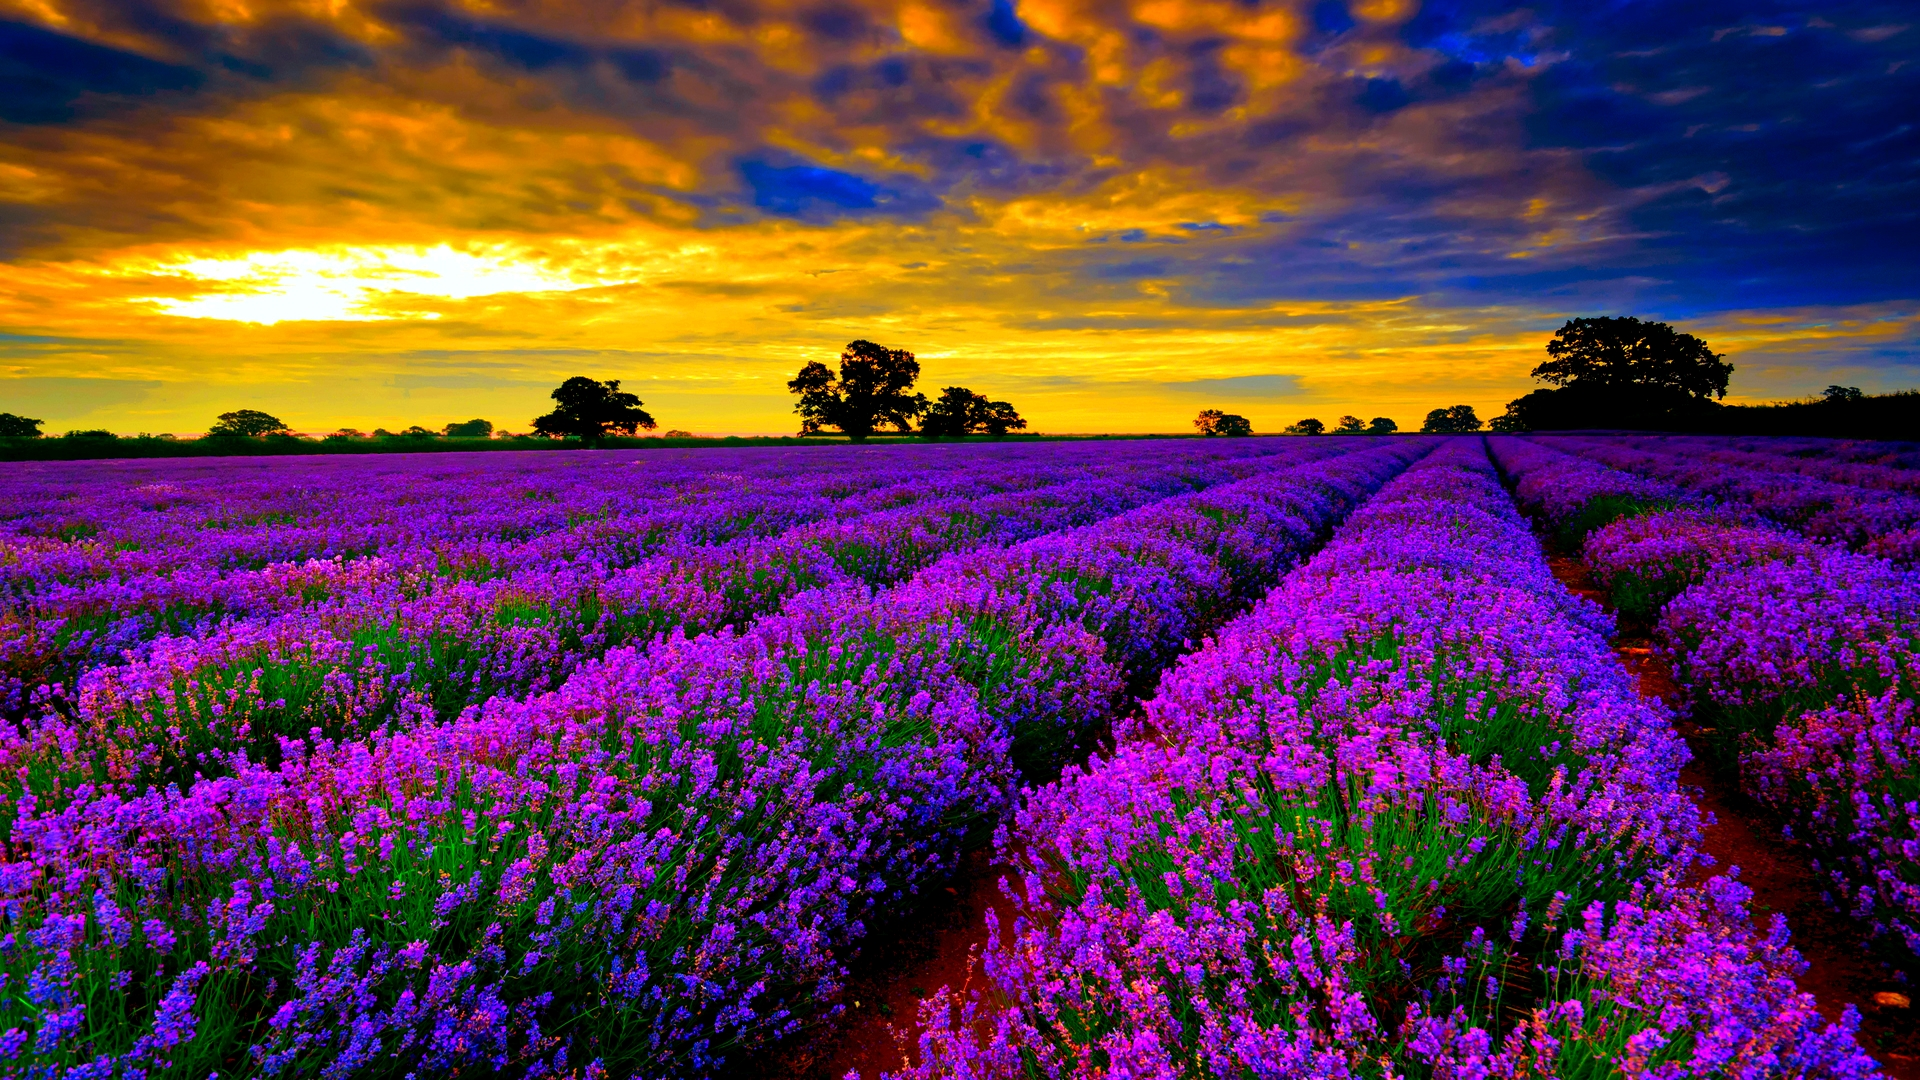 Lavender Fields Provence in France [1920x1080] wallpaper 1920x1080